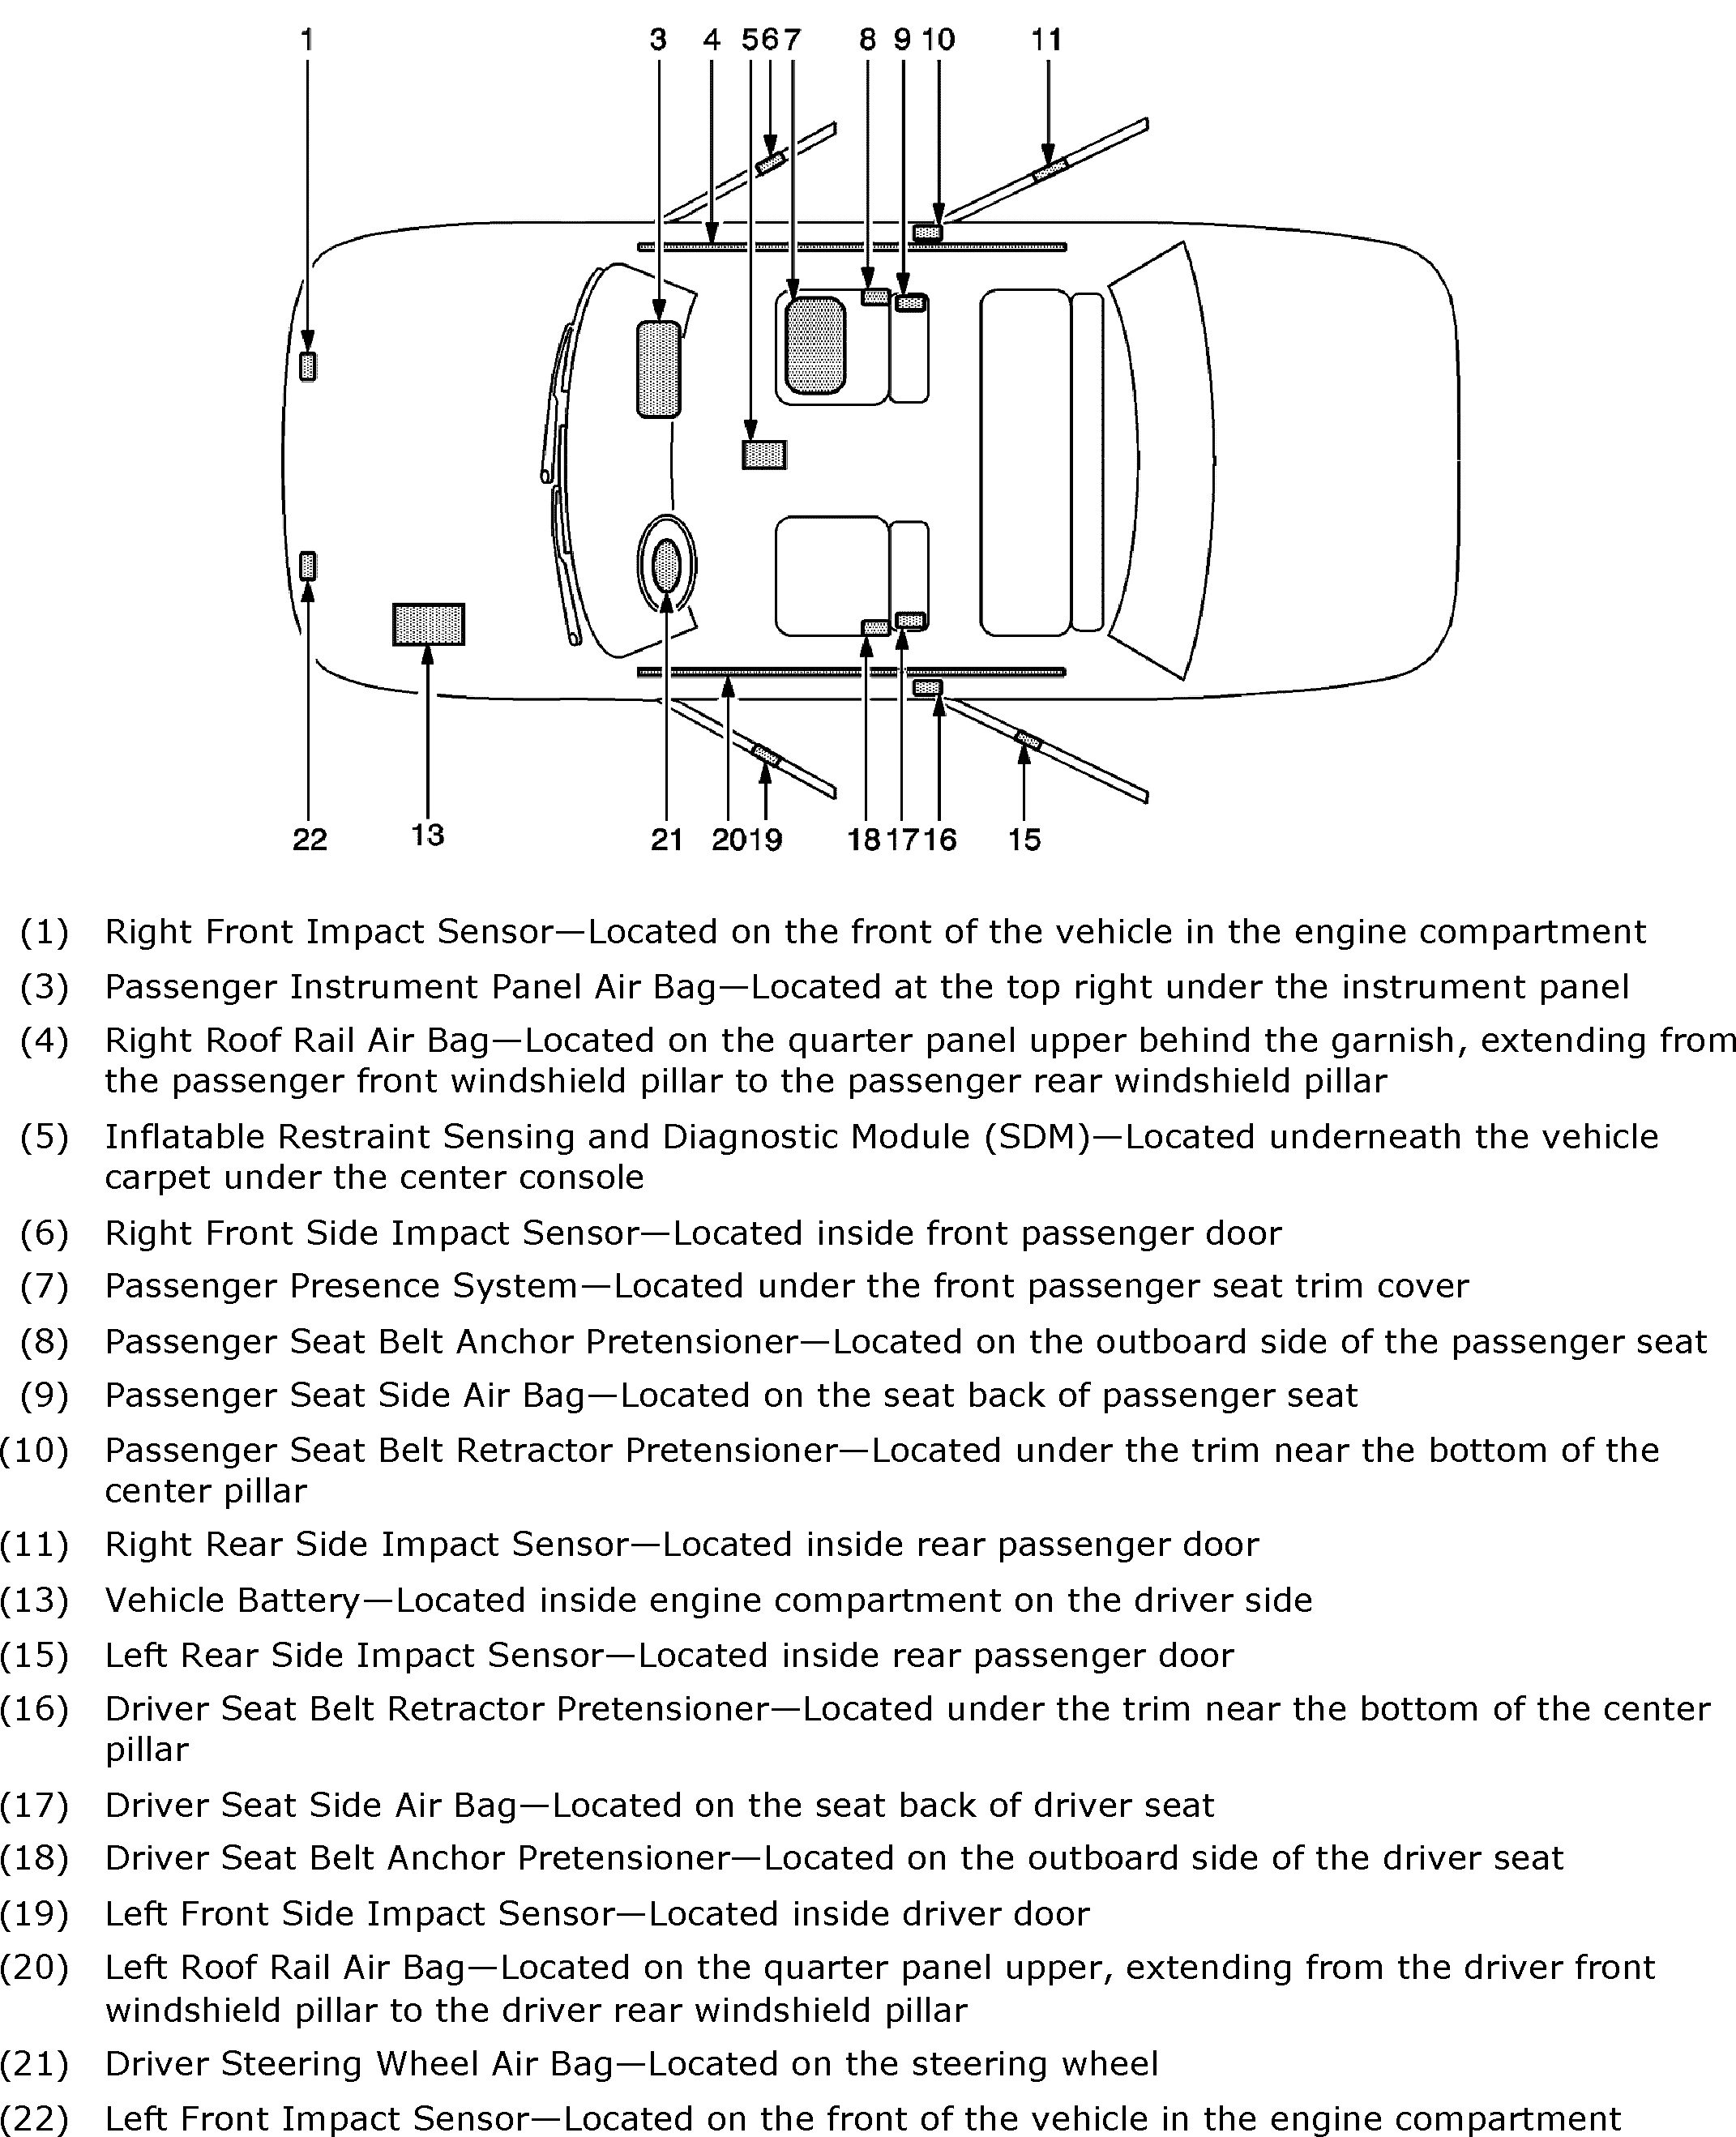 2011-cadillac-srx-air-bag-module-location-diagram